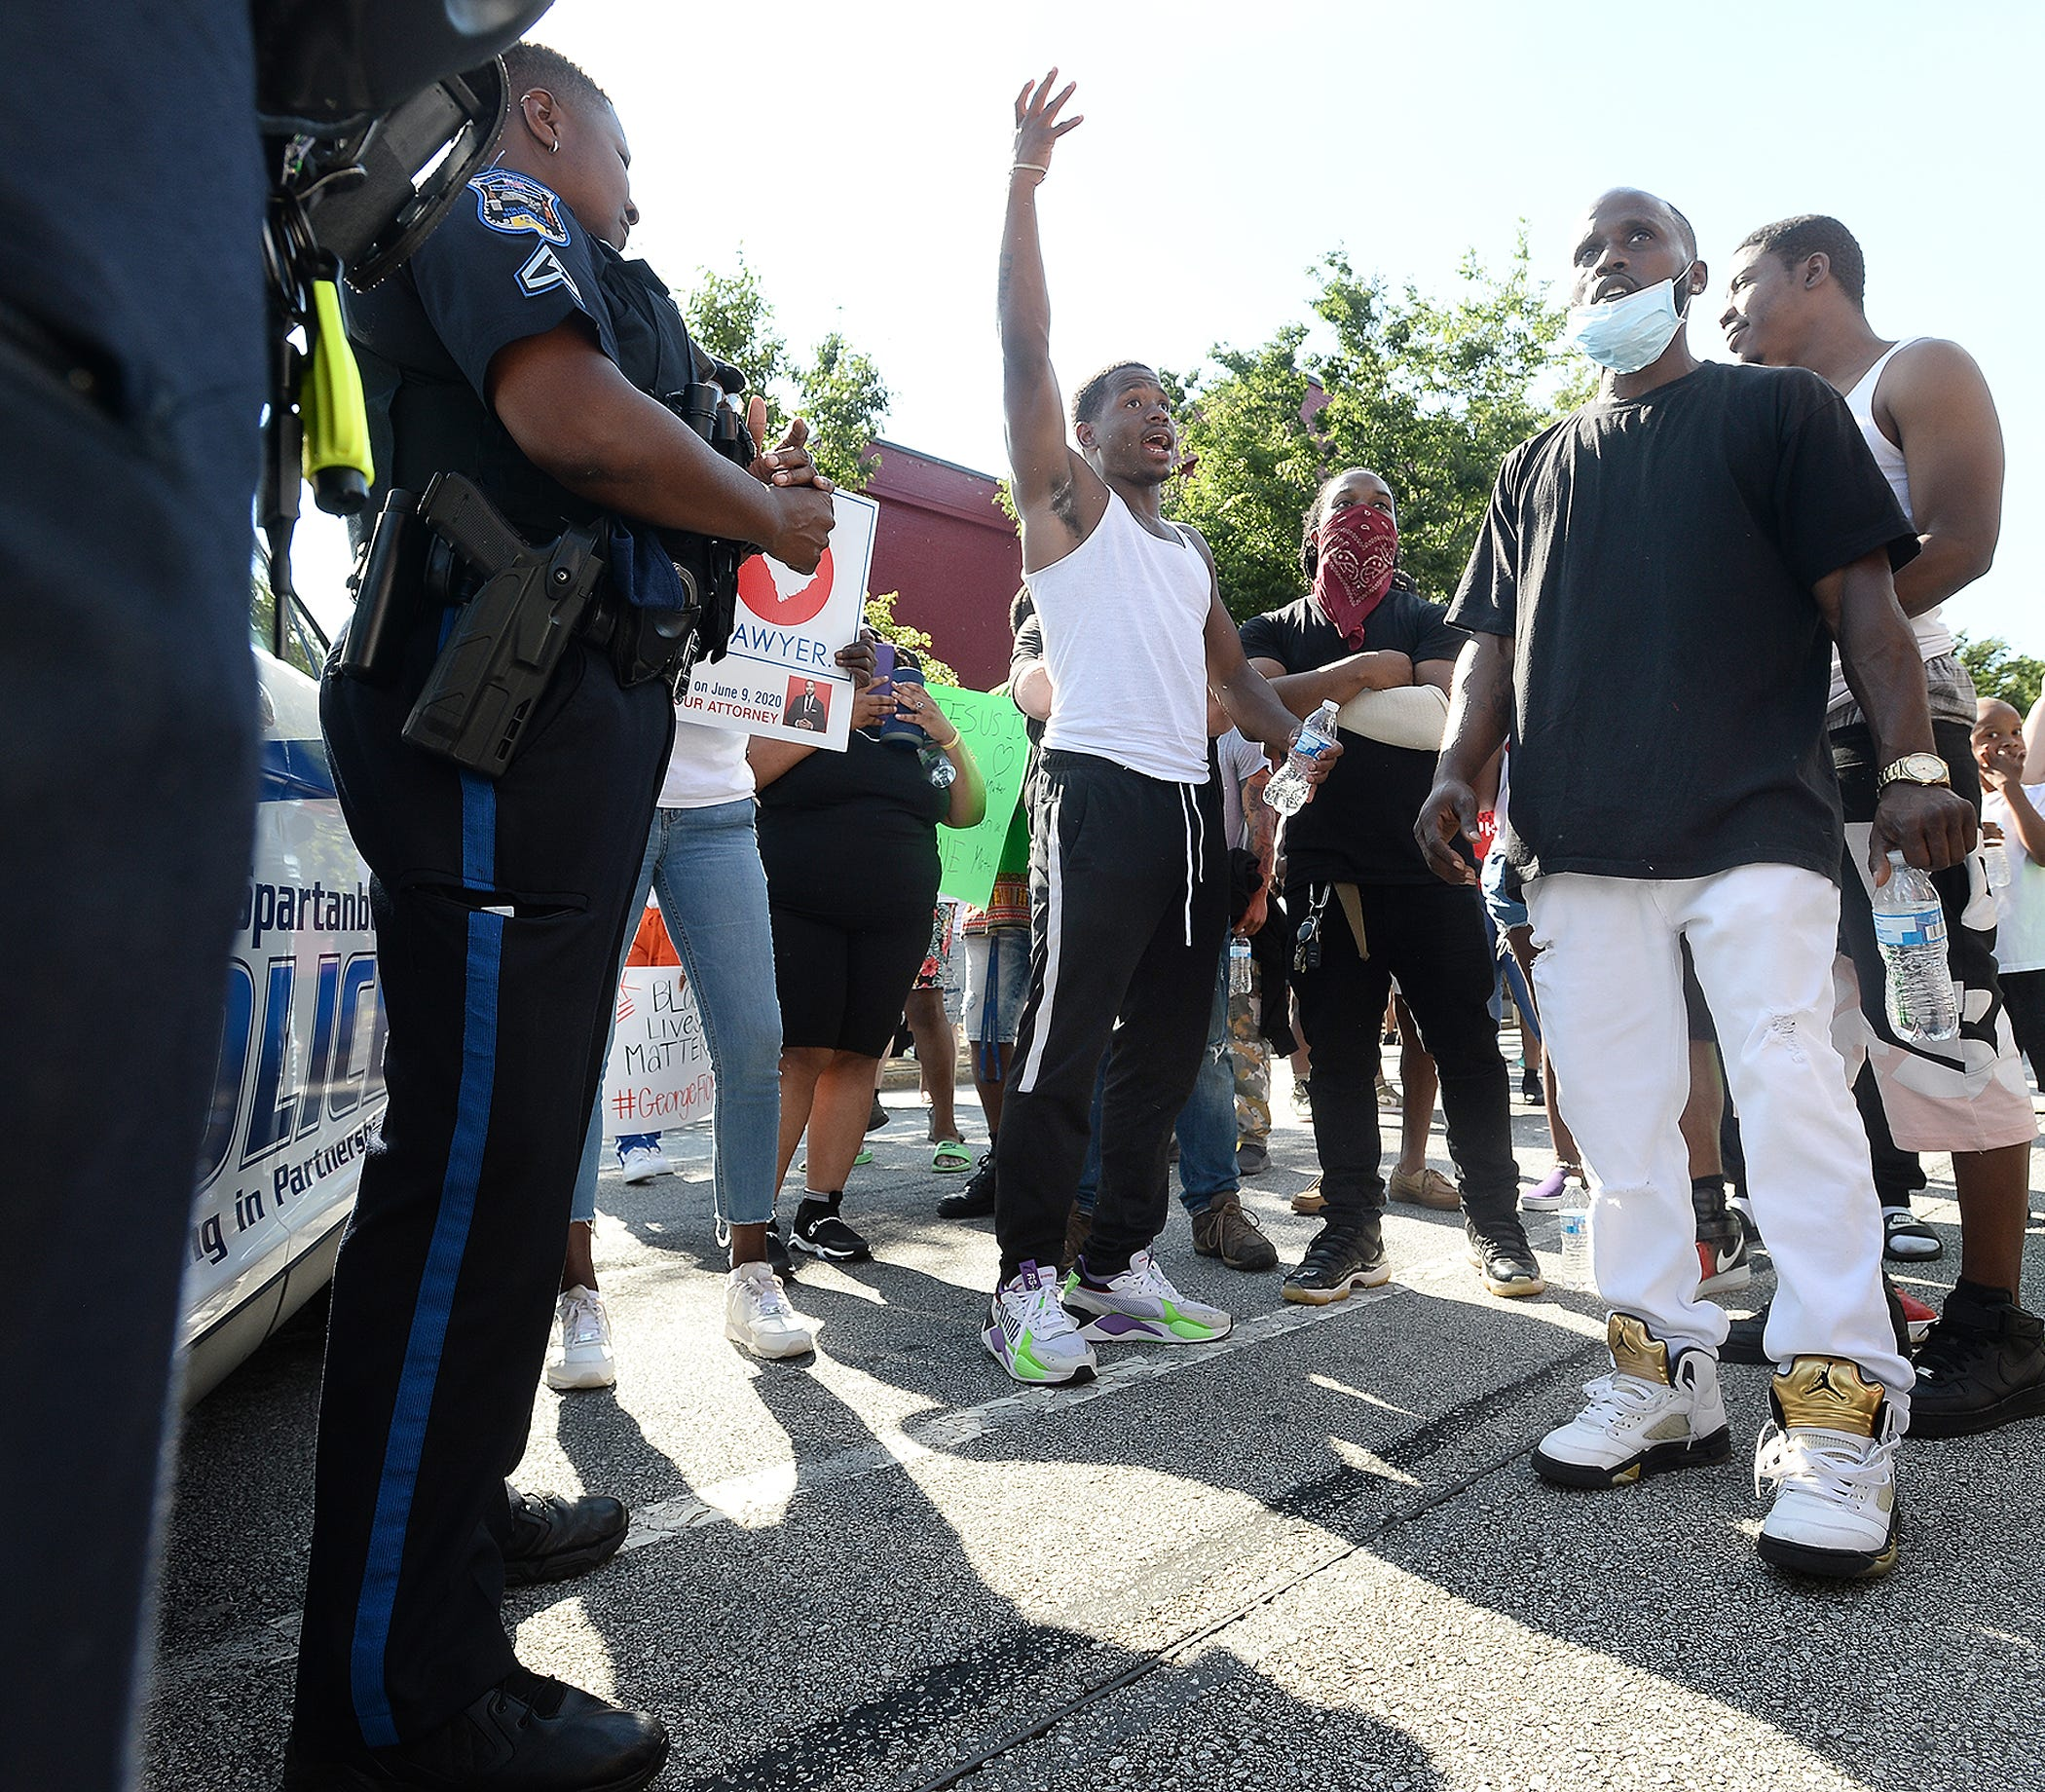 A group of peaceful protestors marched around the  Spartanburg downtown area and to Barnet Park on Sunday.